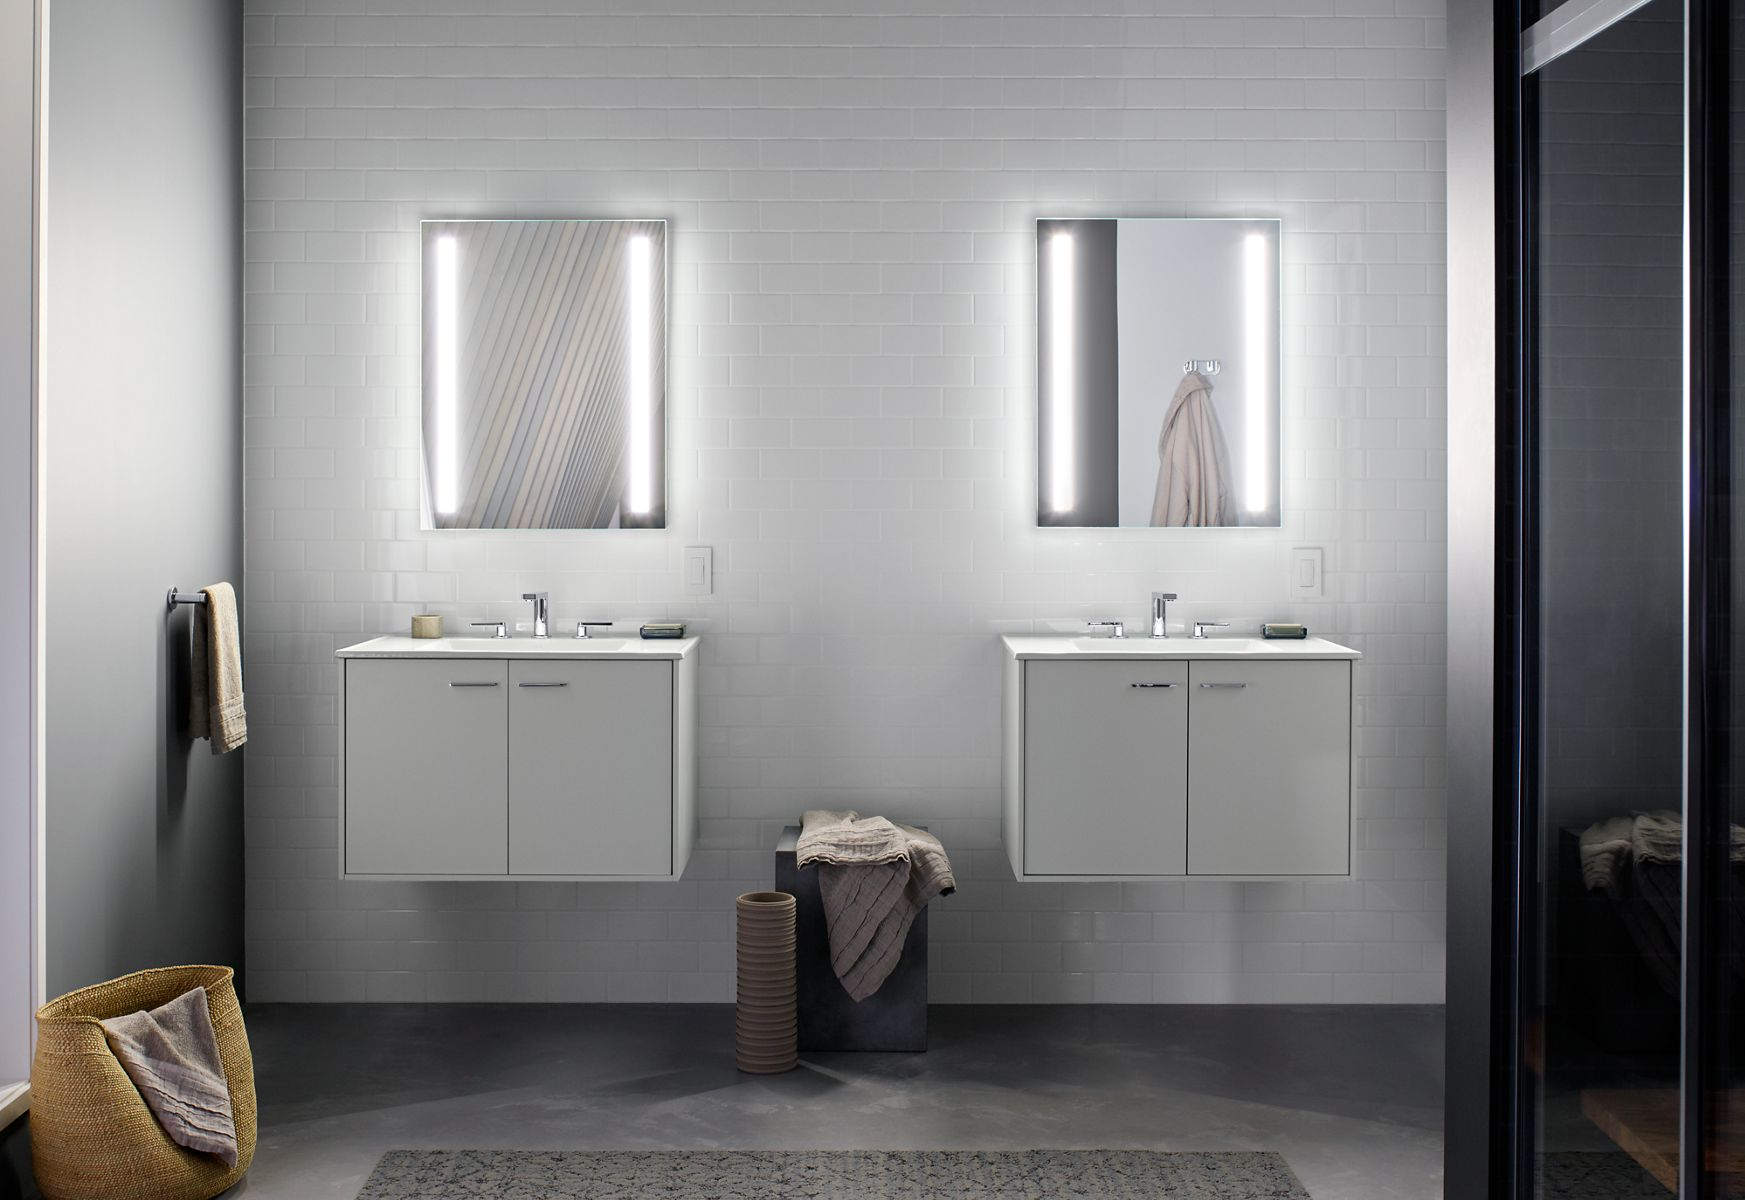 Bathroom Mirror Medicine Cabinet With Lights Bathroom Medicine Cabinets Other Furniture And Storage